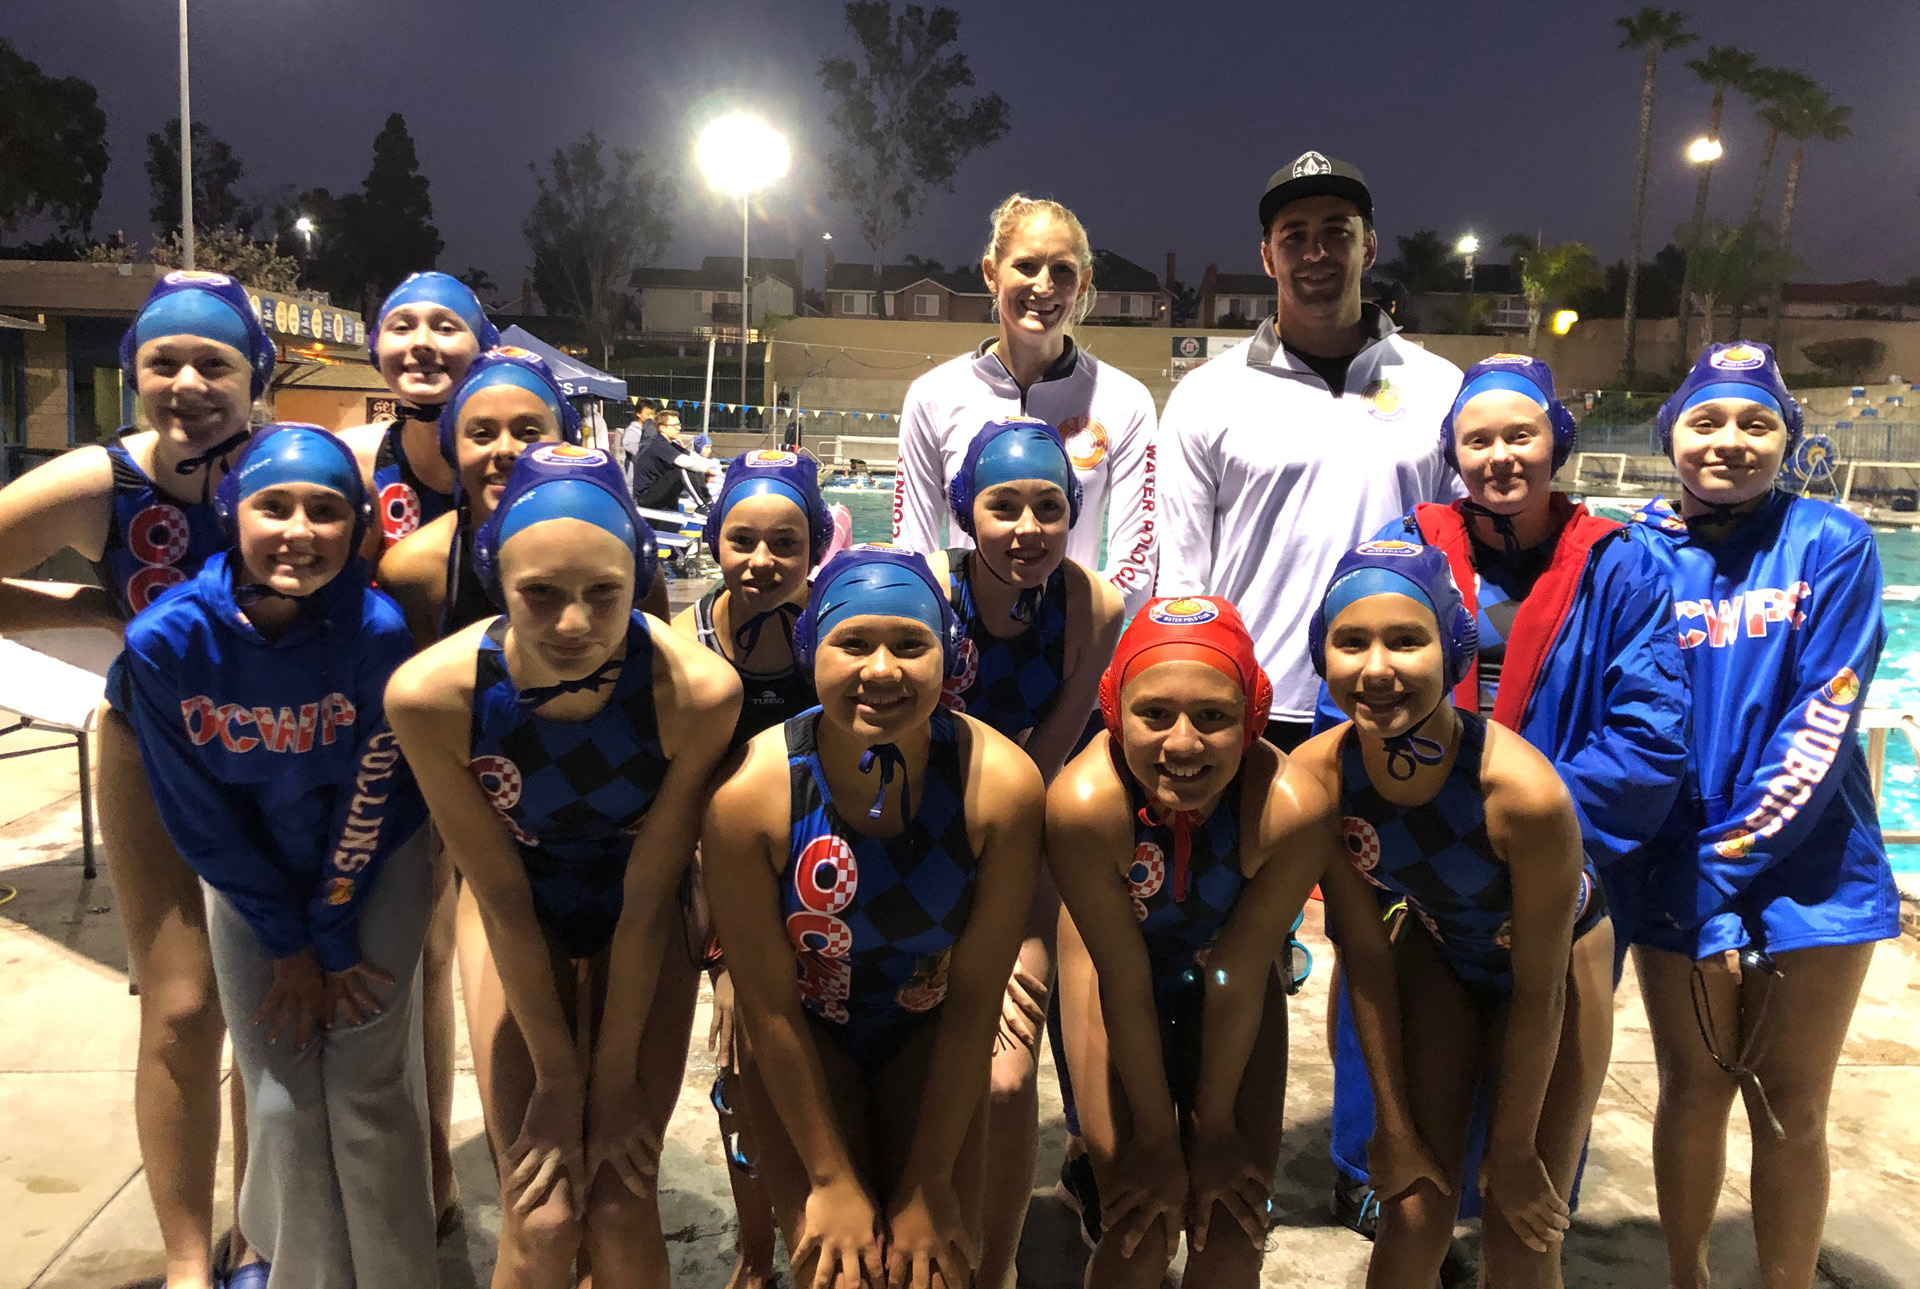 ocwpc-14u-girls-team-2020_1920